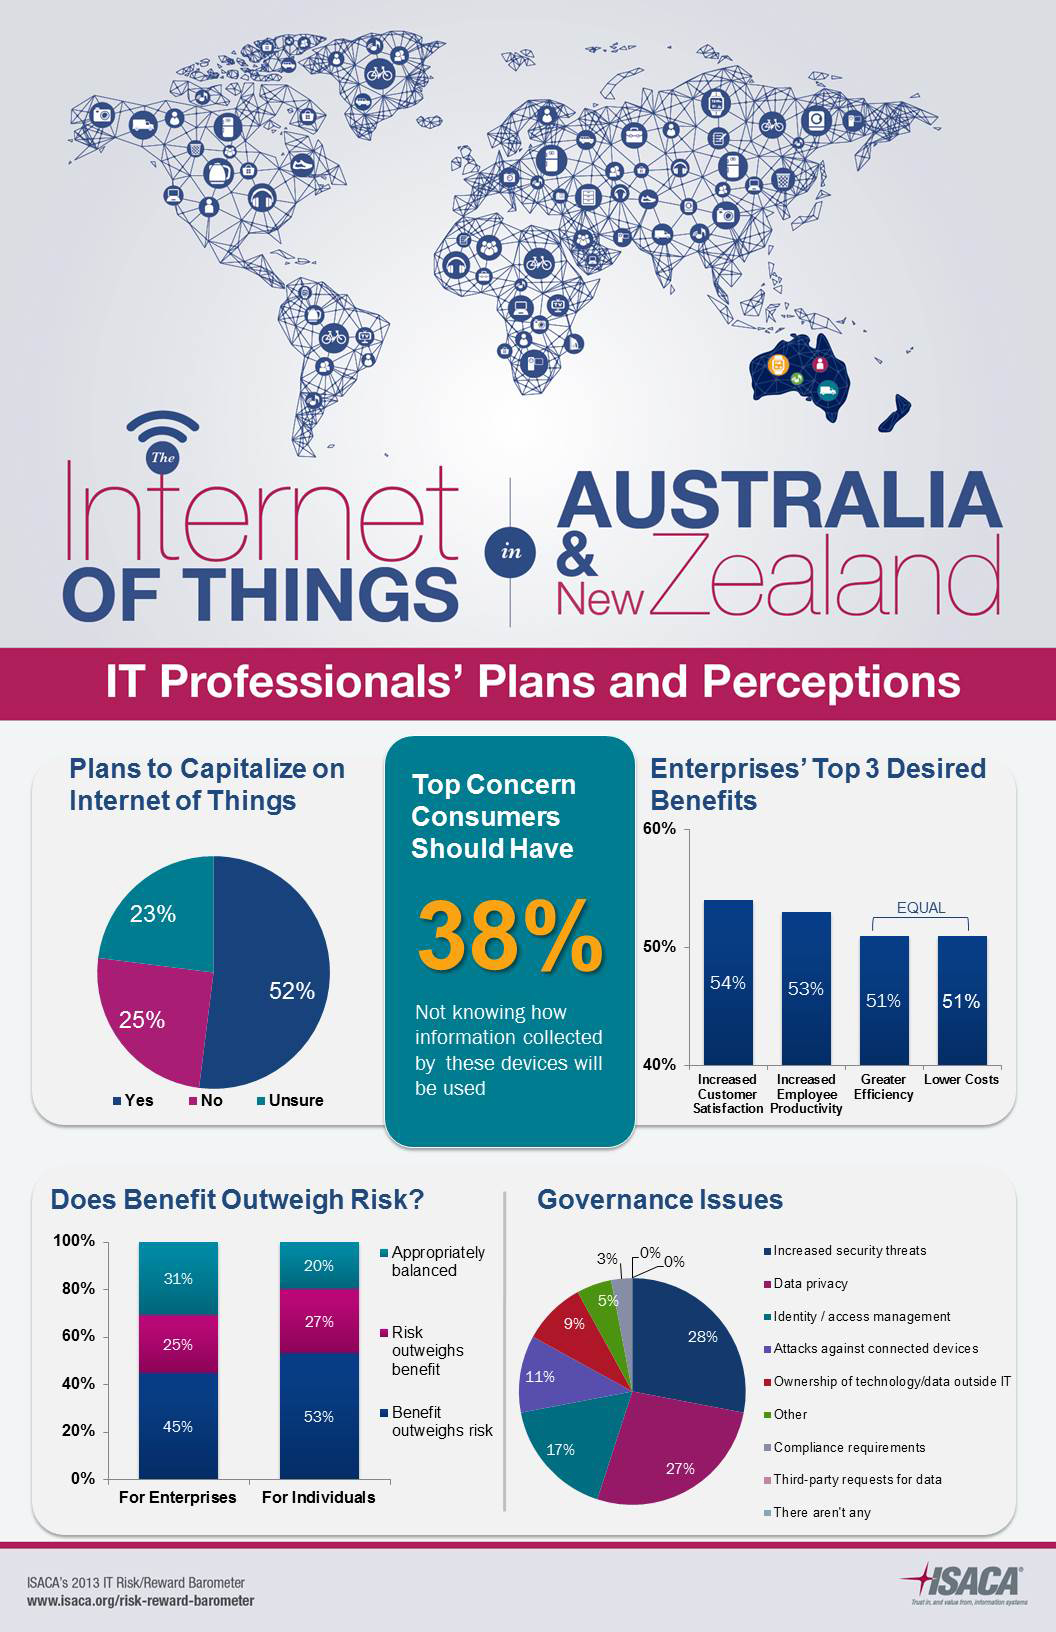 Benefits of Connected Devices Outweigh Risks to Australian and New ...